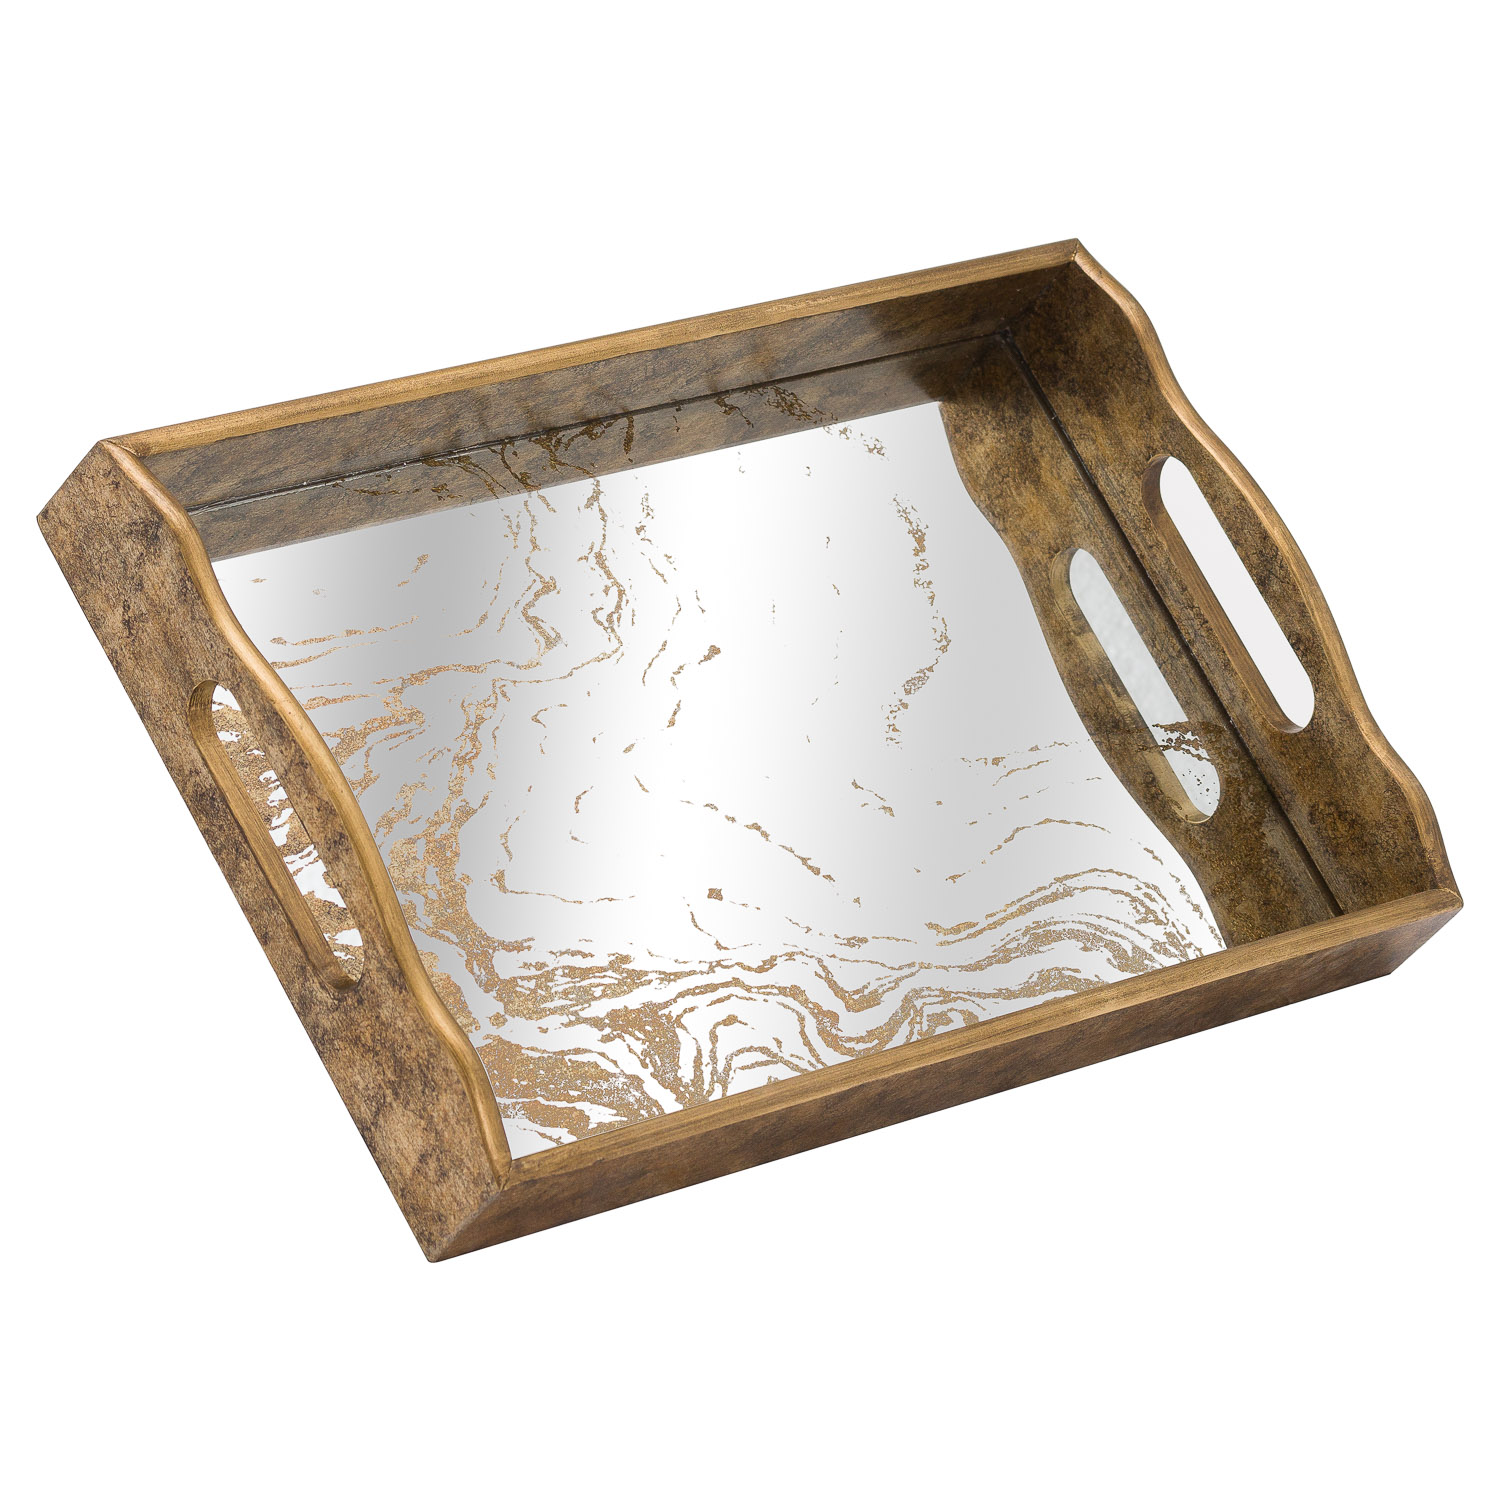 Augustus Mirrored Tray With Marbling Effect